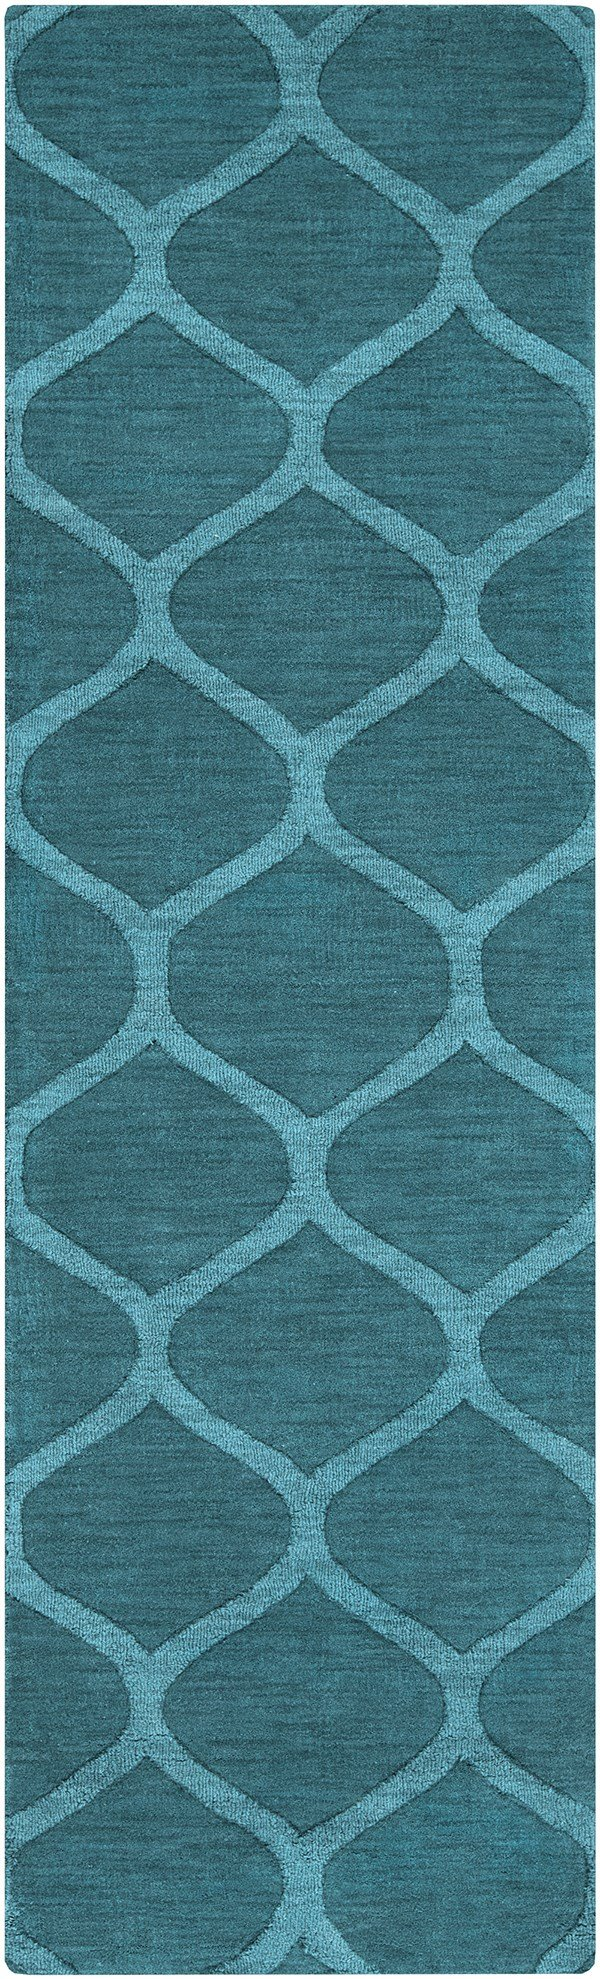 Teal (M-5109) Moroccan Area Rug